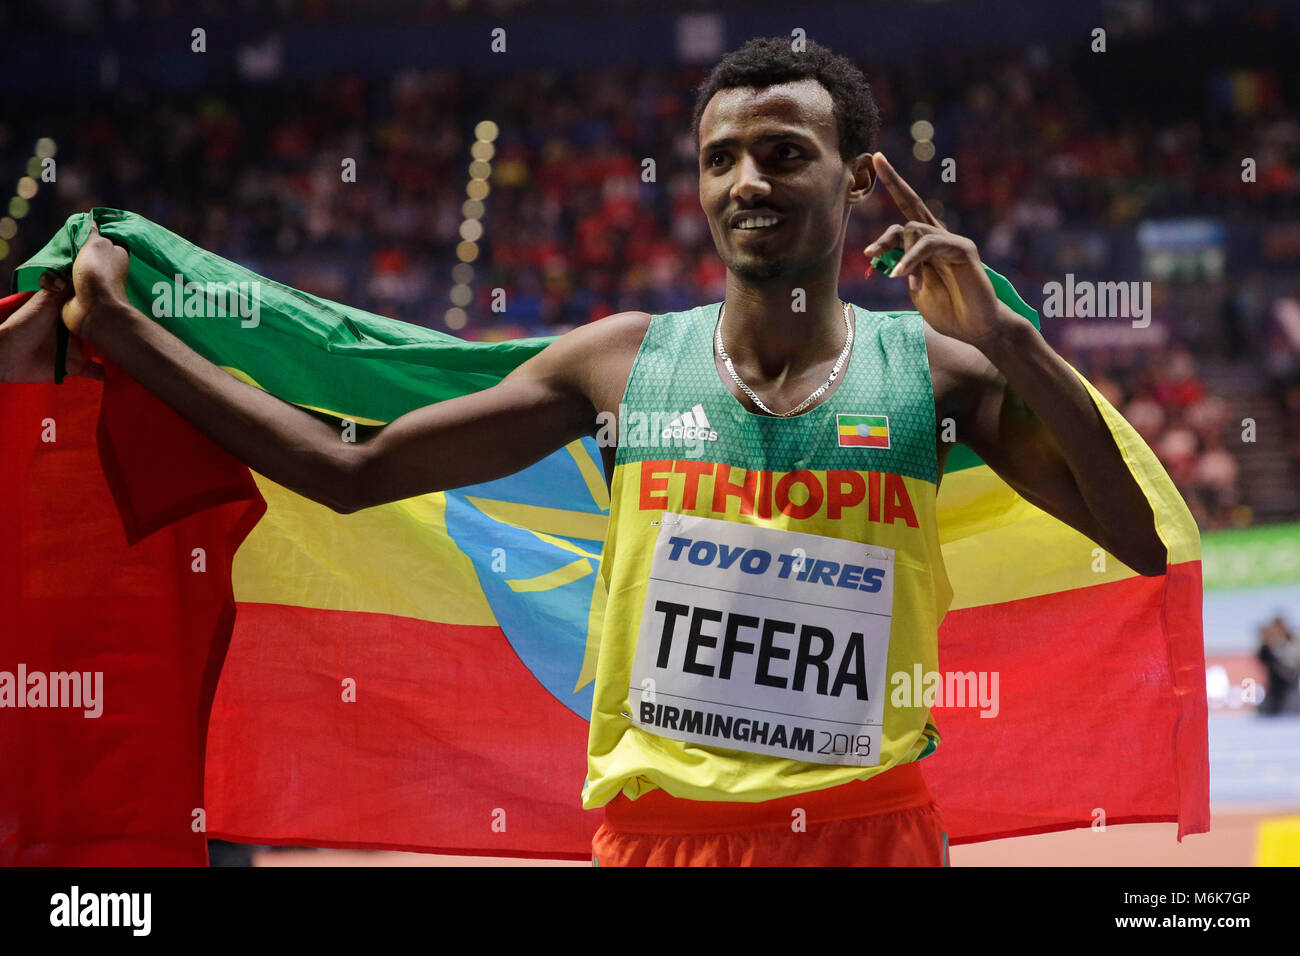 Birmingham. 4th Mar, 2018. Samuel Tefera of Ethiopia celebrates after winning the men's 1500m final of the IAAF - Stock Image